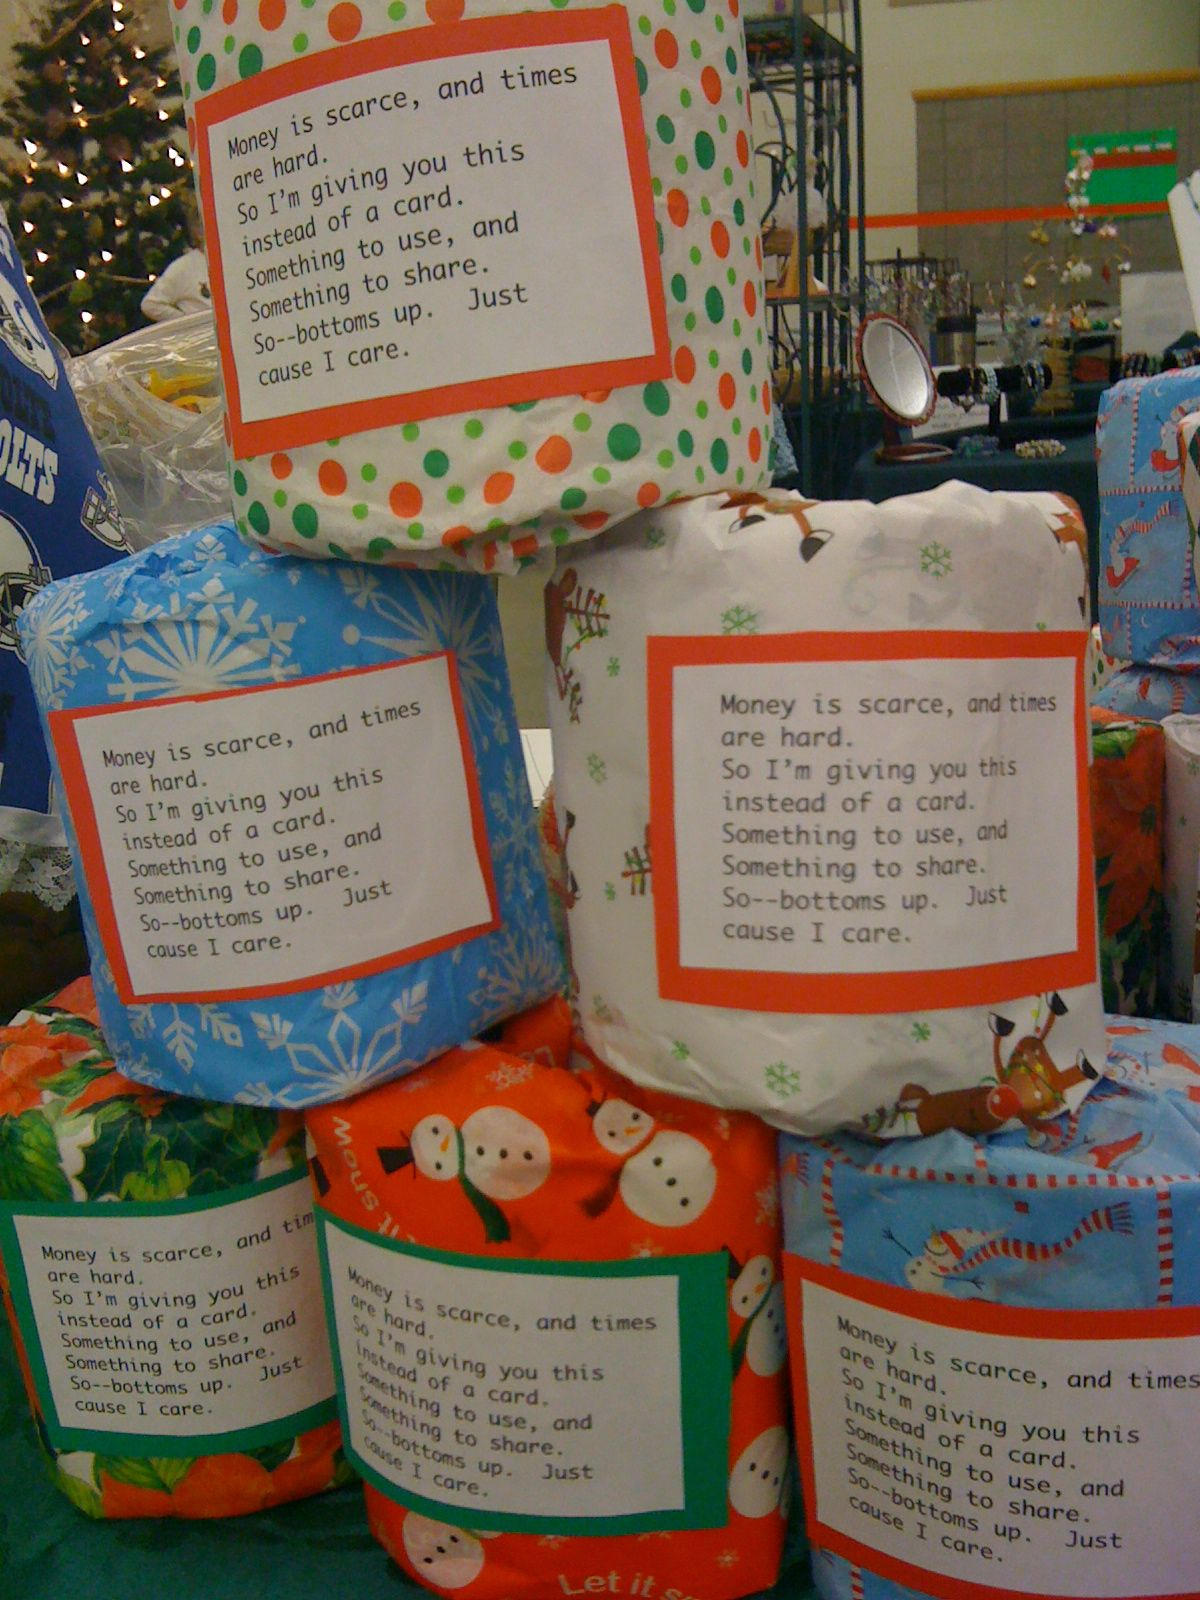 Toilet paper gag gifts money or a gift card can be